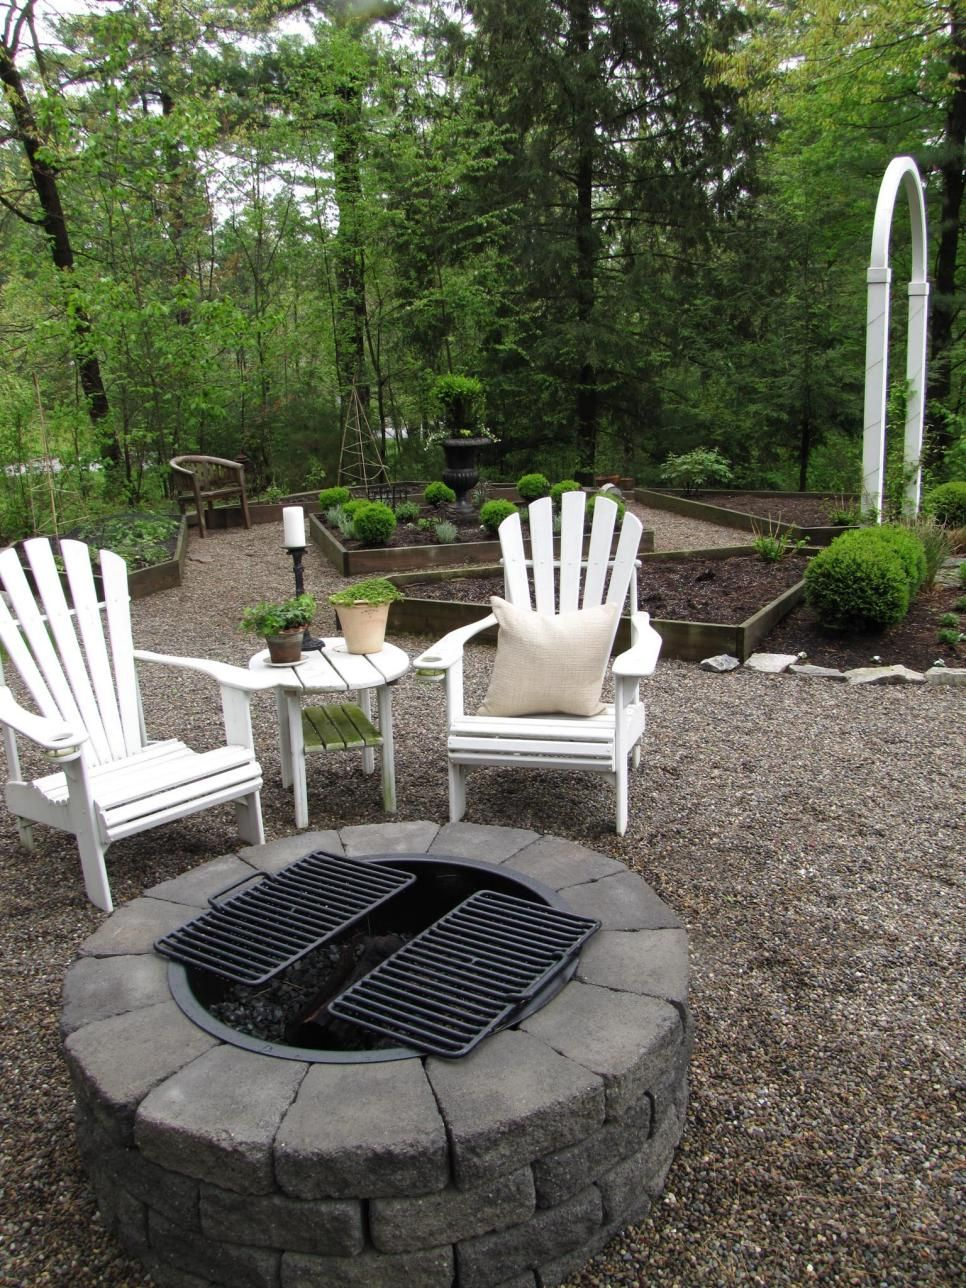 15 Patio-Sized Fire Pits and Water Features | Water fountains, Small on diy backyard bar ideas, small backyard stone ideas, small backyard landscaping along fence, small backyard grill ideas, small backyard retaining wall ideas, small backyard lounge ideas, backyard shed bar ideas, small backyard games ideas, small backyard brick ideas, small backyard bathroom ideas, small backyard covered deck designs, small bbq pit ideas, small backyard putting green ideas, small backyard tree house ideas, small backyard gazebo ideas, small backyard fence ideas, small backyard greenhouse ideas, small backyard garage ideas, small backyard water fountains ideas, cheap backyard privacy ideas,